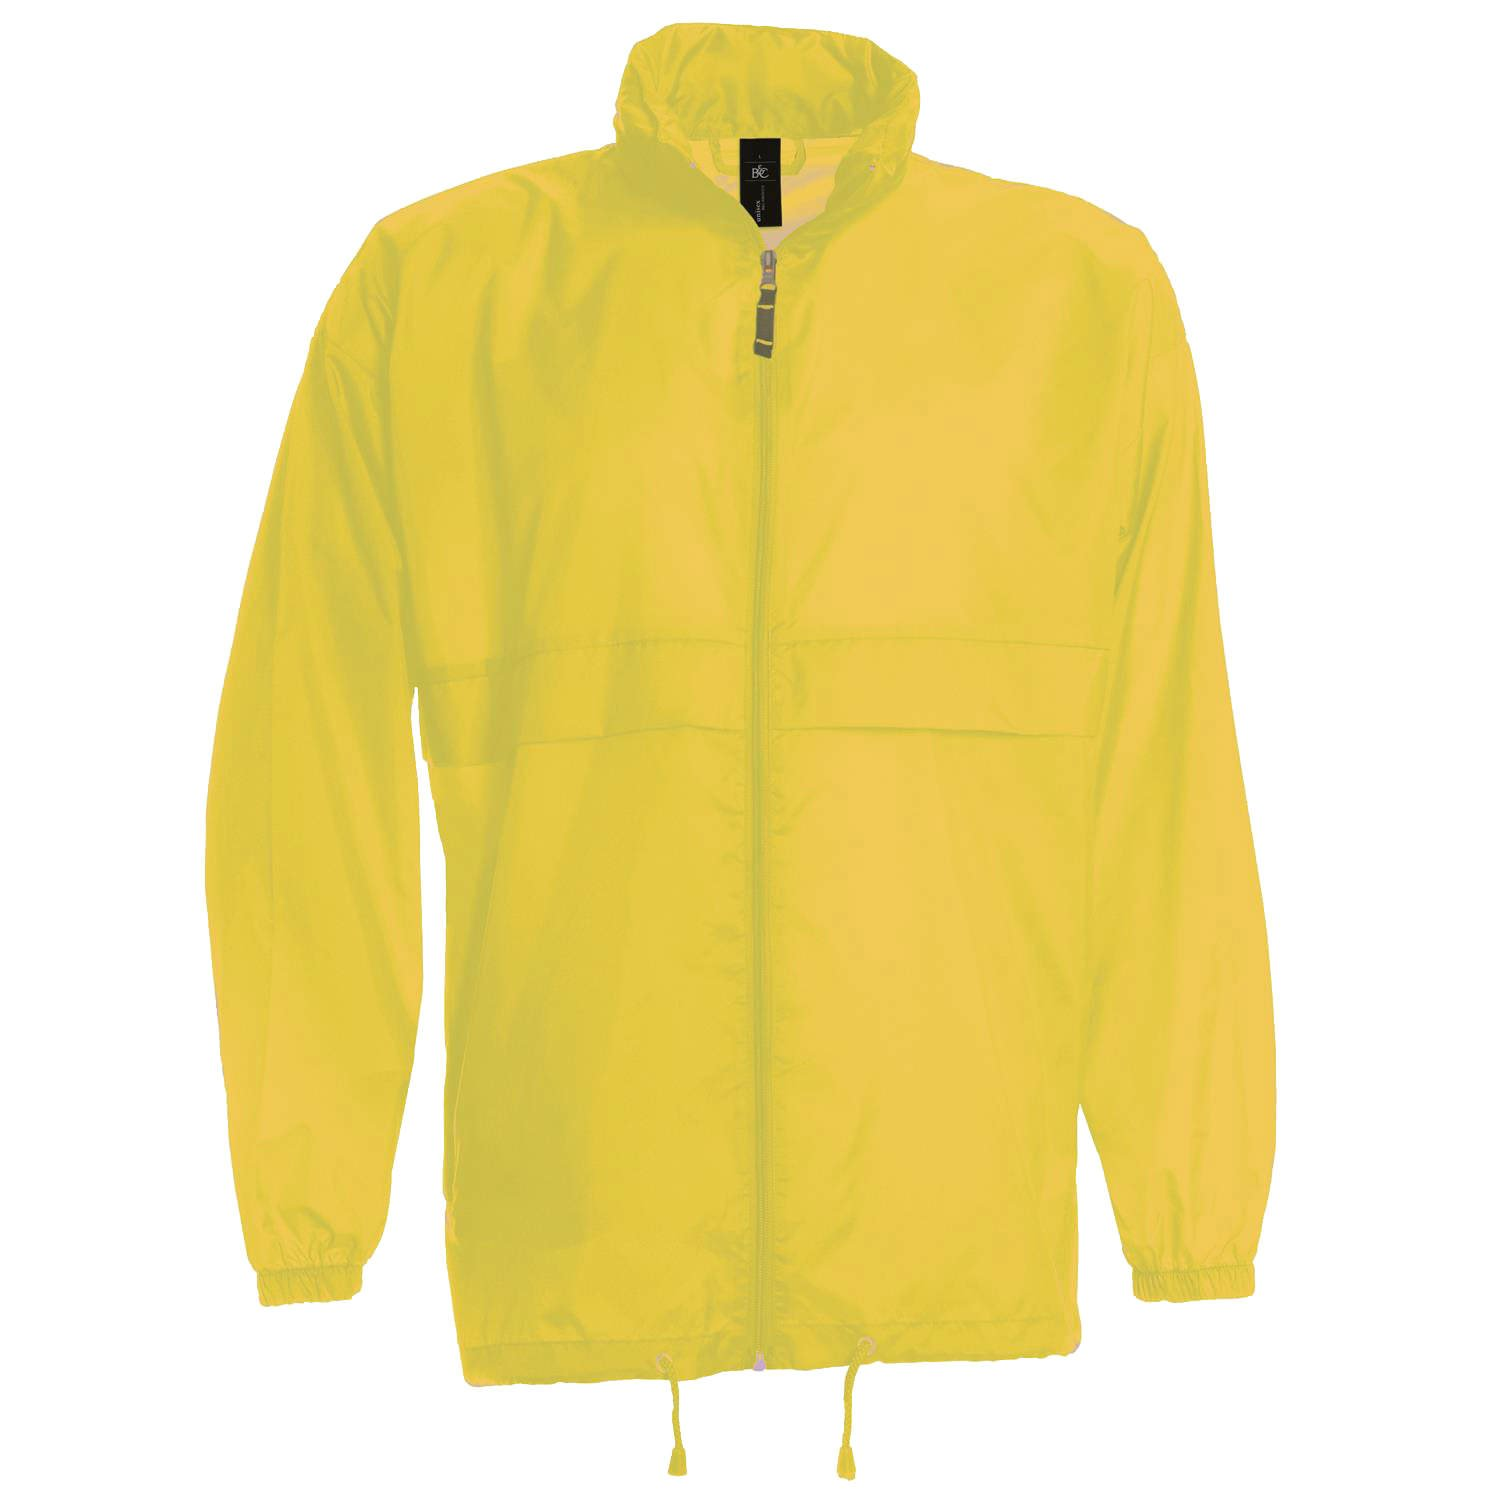 Foldaway Showerproof Windbreaker Jacket by B and C Collection